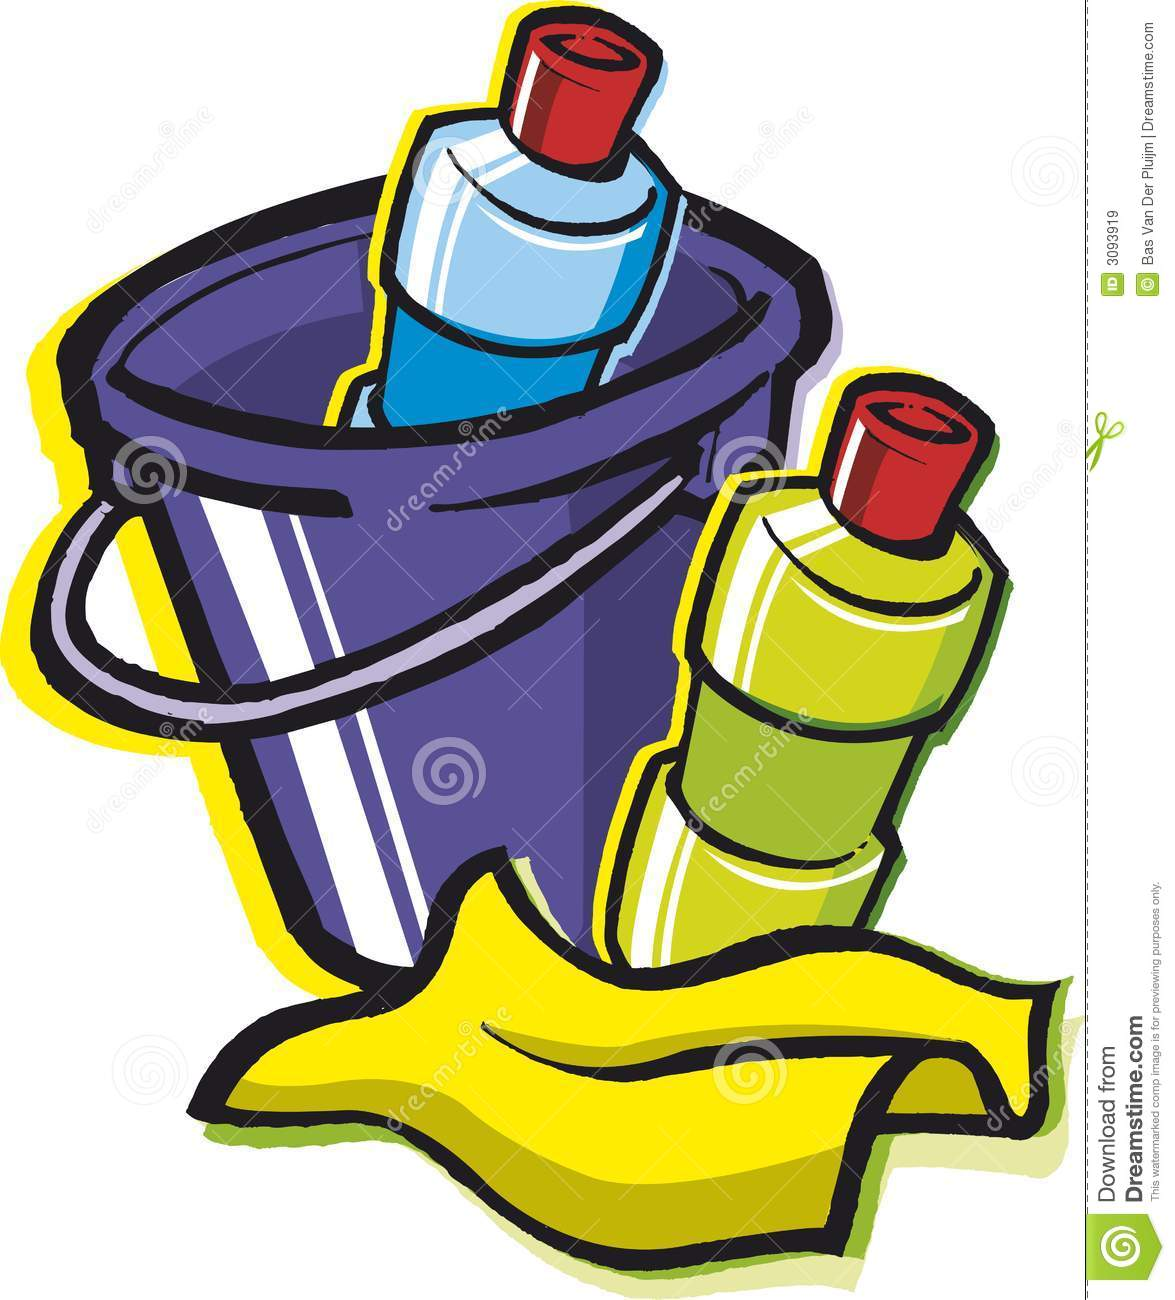 Janitorial supplies clipart clip black and white library Janitorial Clipart | Free download best Janitorial Clipart on ... clip black and white library